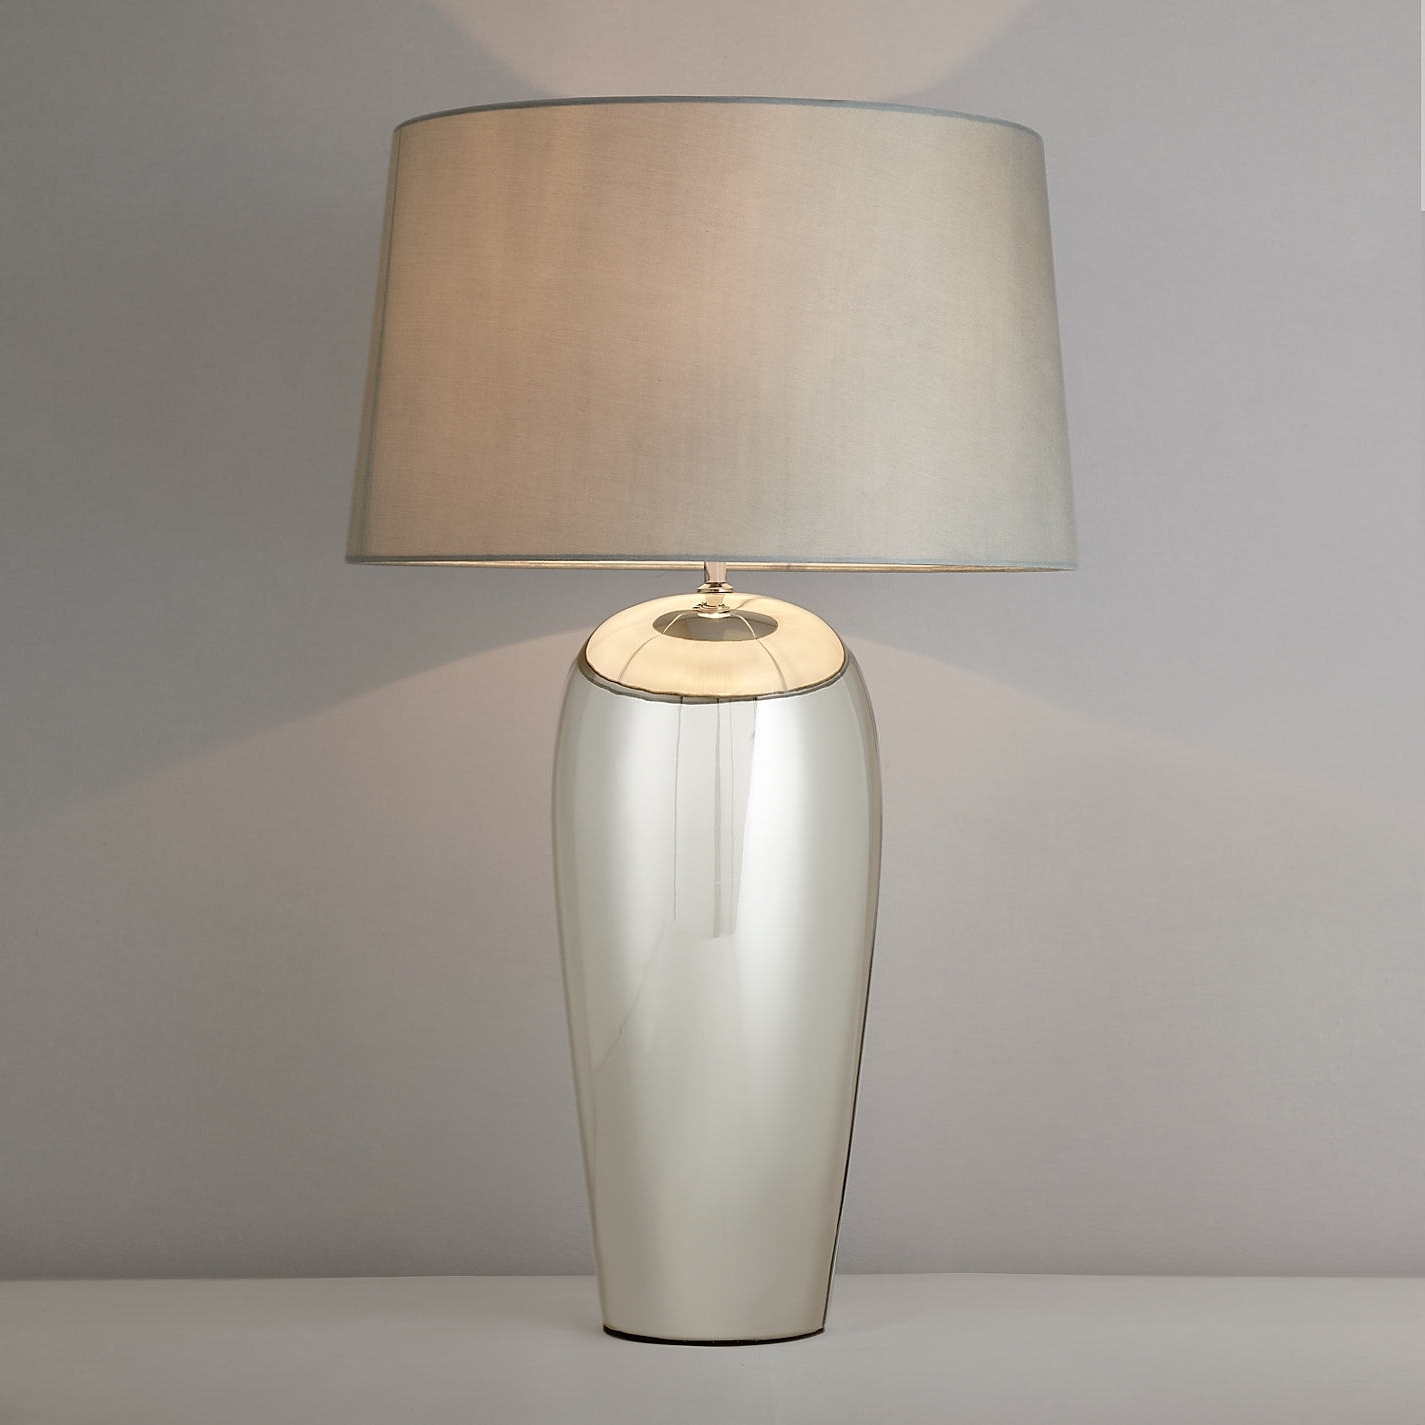 Gallery John Lewis Table Lamps – Badotcom Inside Well Known John Lewis Table Lamps For Living Room (View 7 of 15)